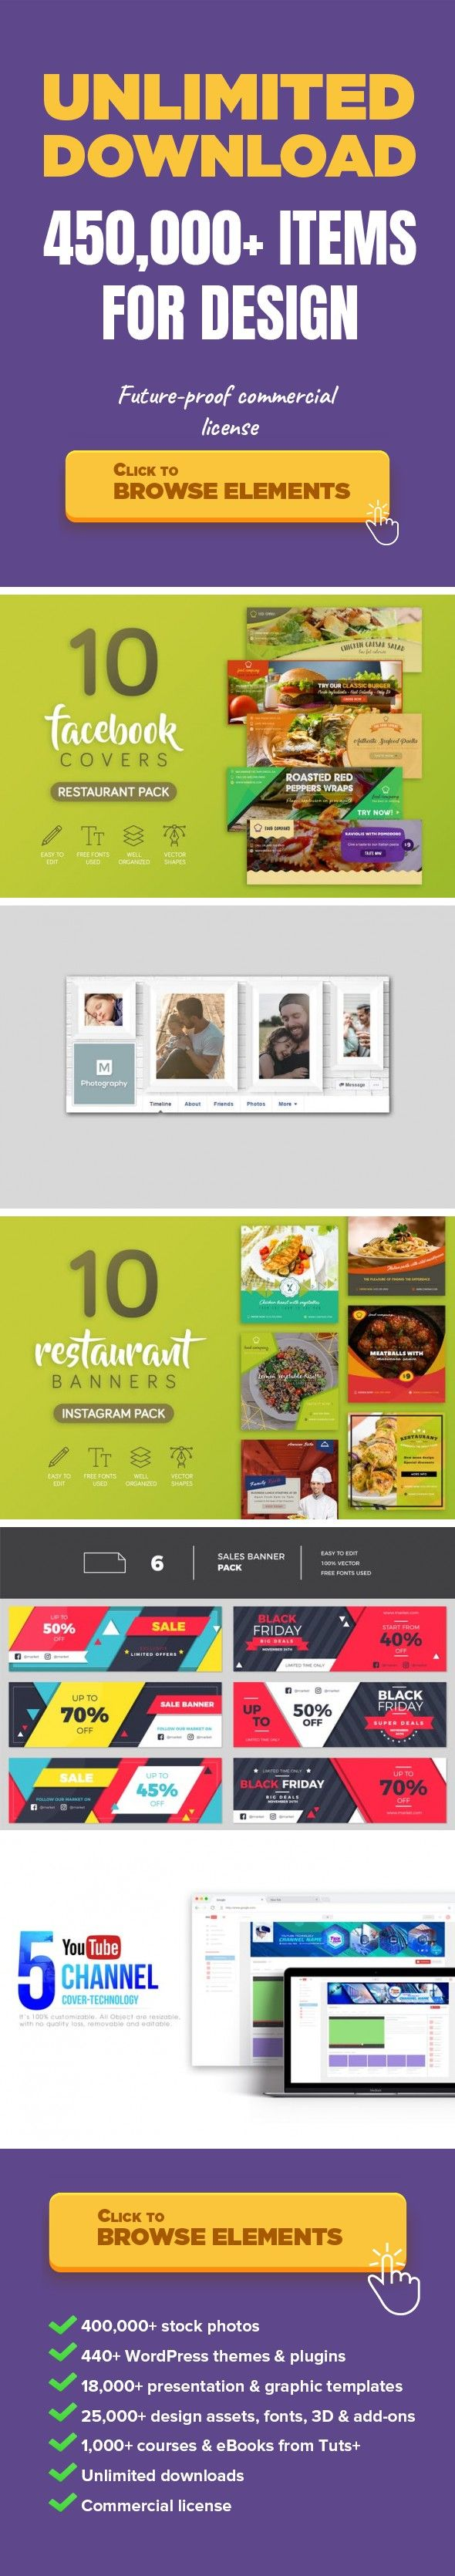 Restaurant Facebook Cover Graphics, Social, Vectors facebook, timeline, cover, food, restaurant, banner, promotion, promotional, coffee, shop, store, pub, bar, bistro, business   RESTAURANT FACEBOOK TIMELINE COVERIntroducing a professional set of restaurant timeline covers to promote on Facebook. This package includes 10 Photoshop designs with creative and unique layouts.Ideal to be used by coffee...